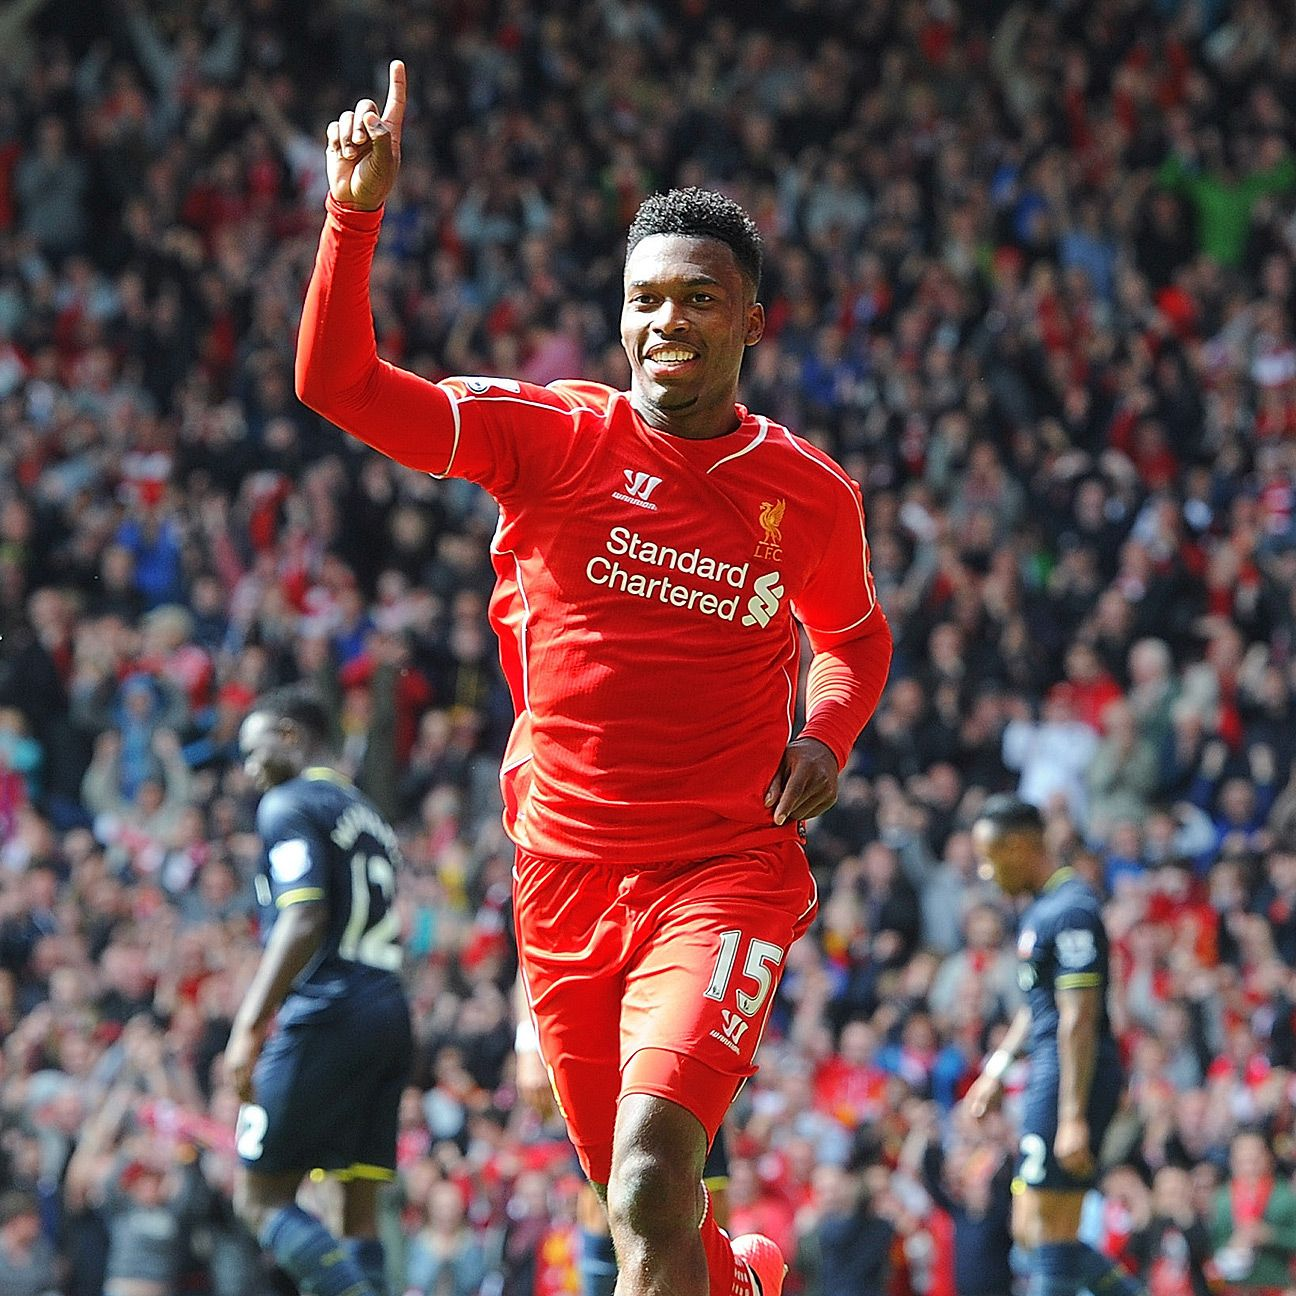 A Daniel Sturridge goal-scoring celebration has been a rare sight this season on Merseyside.